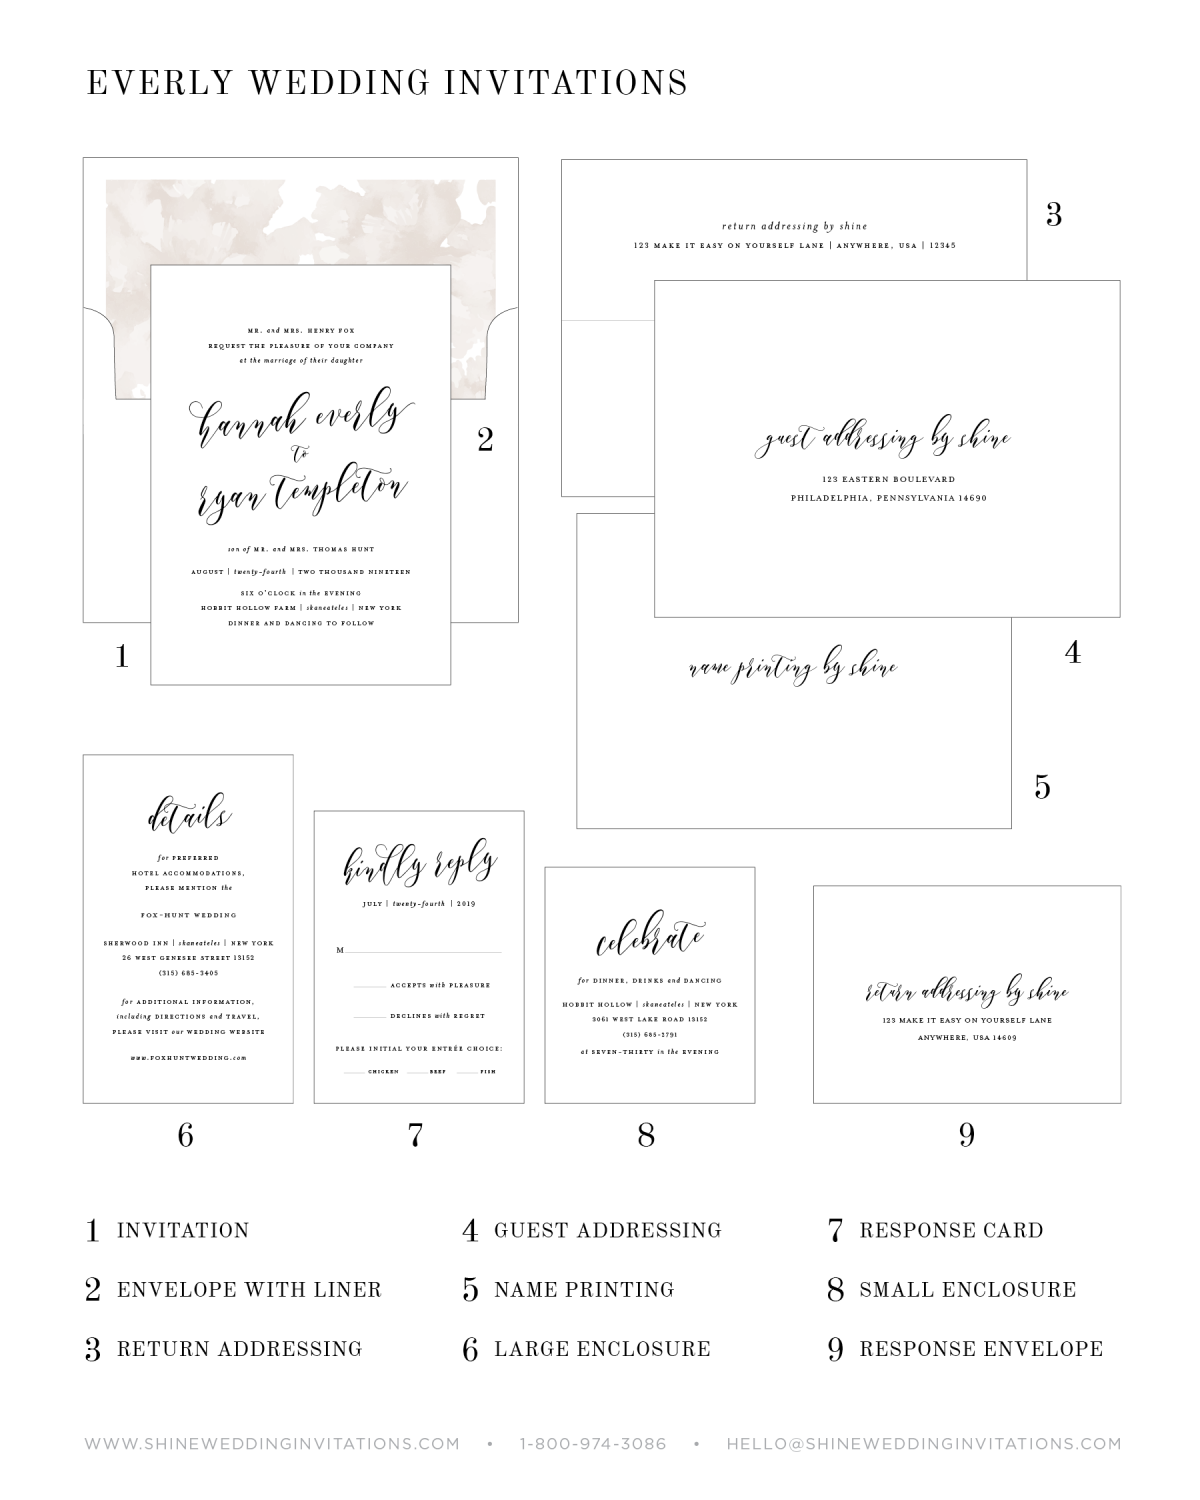 Wedding Invitation Pieces and Explanation